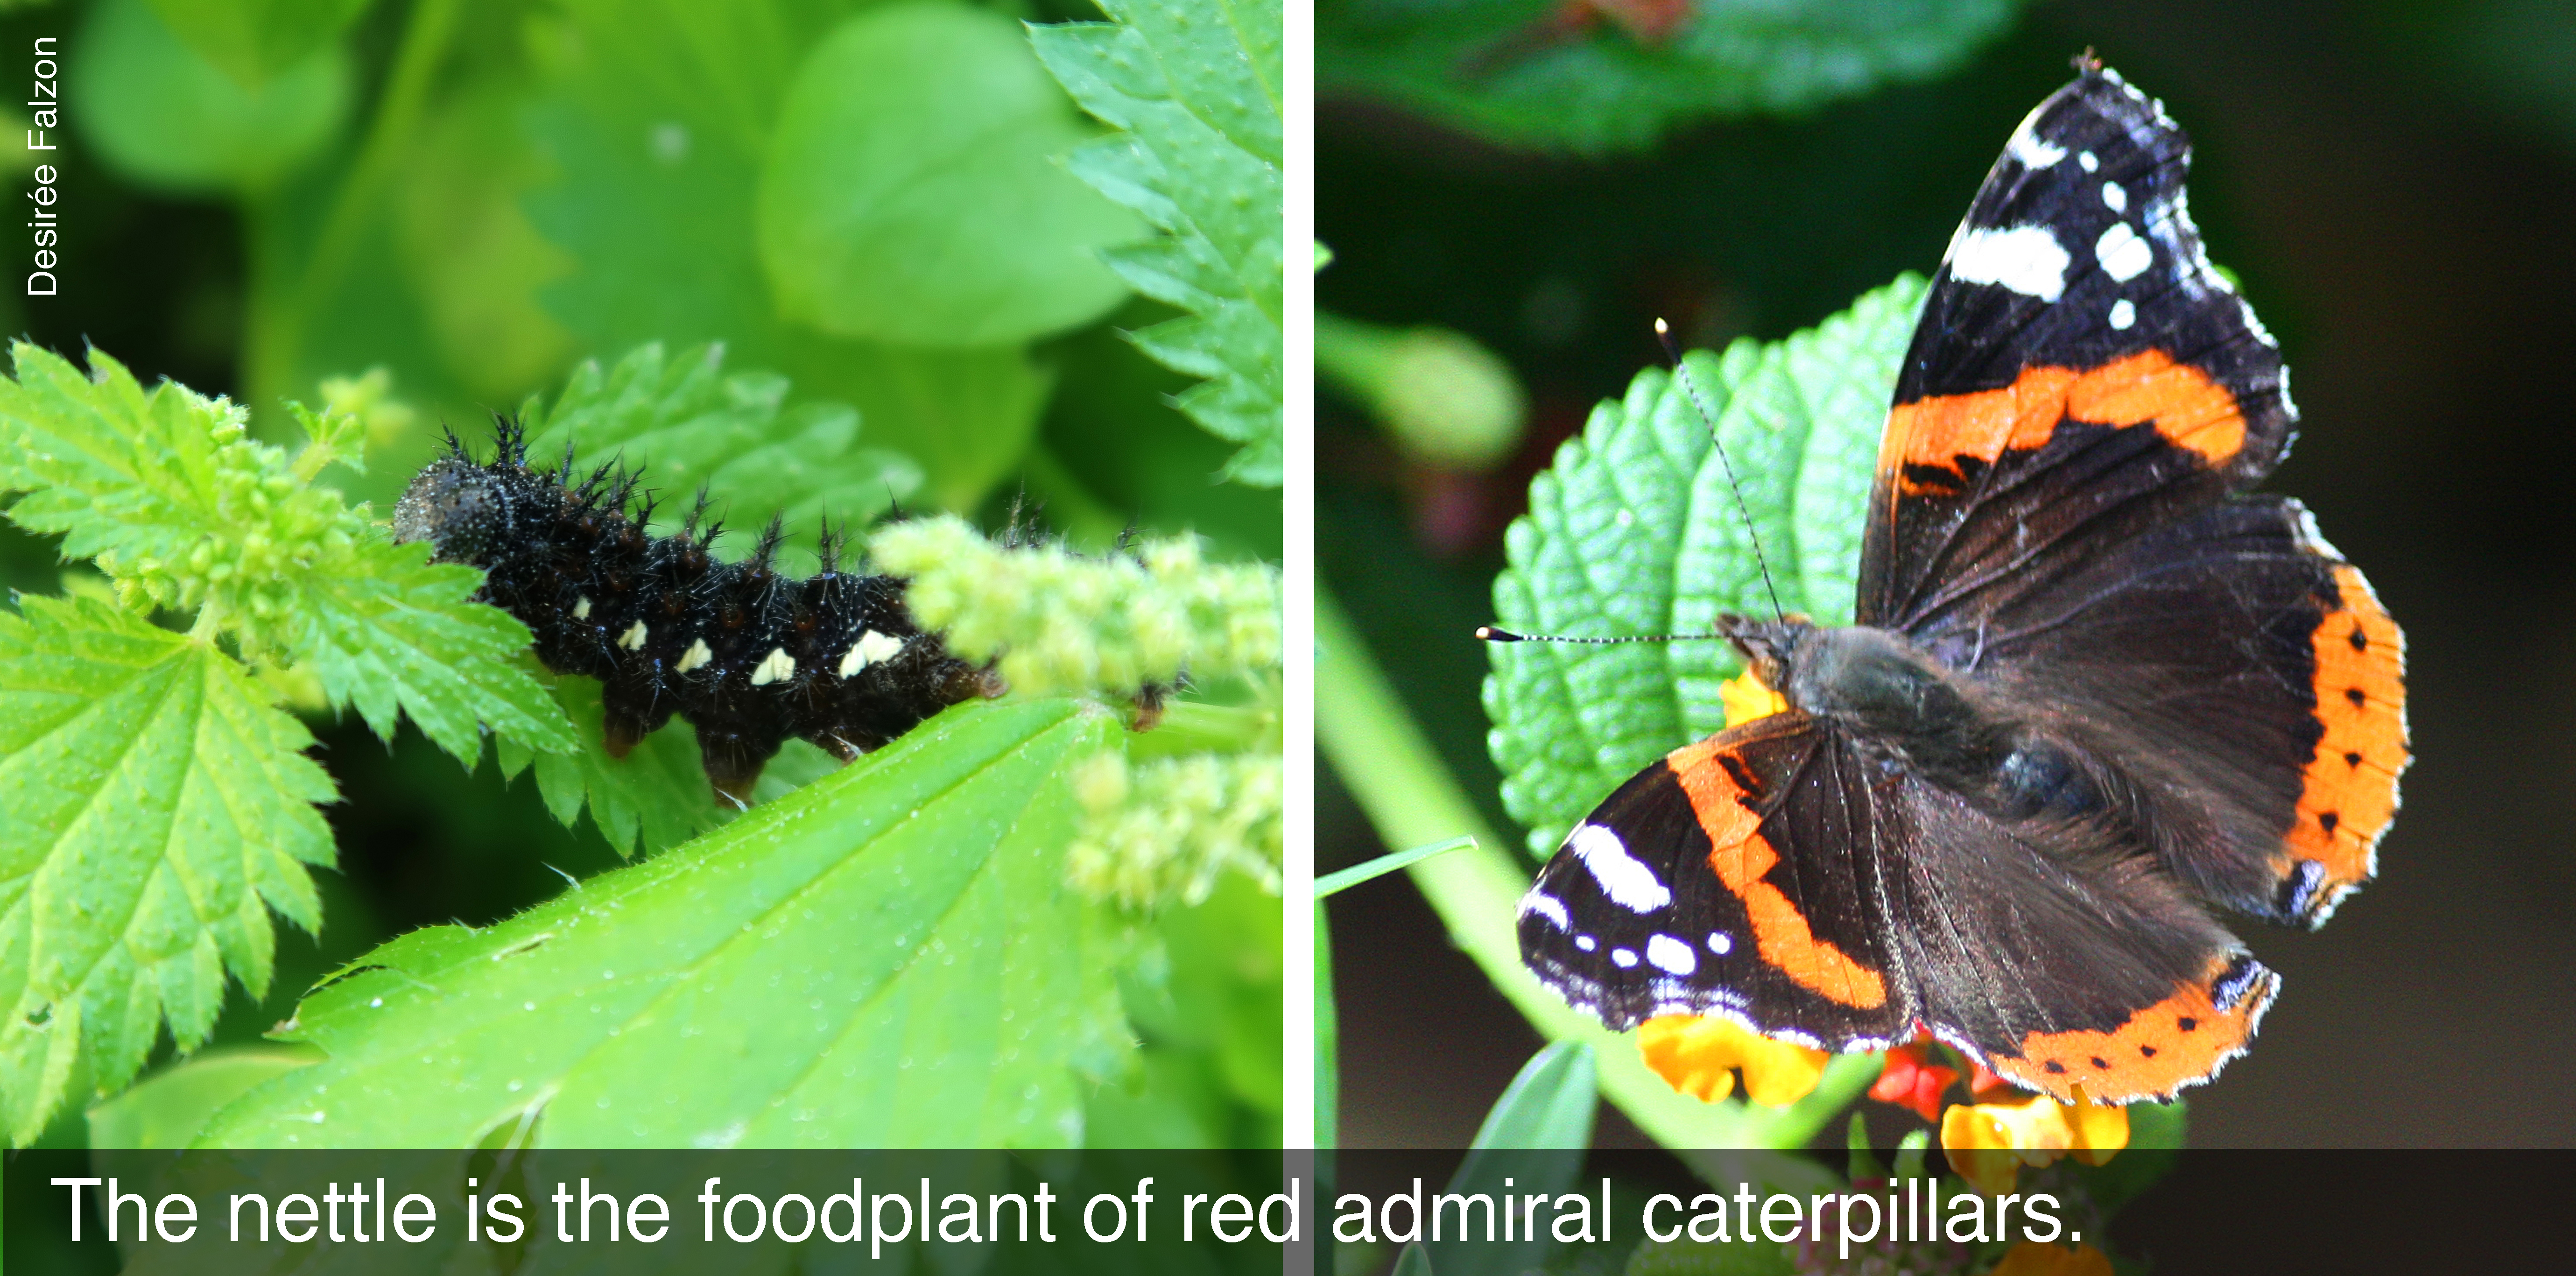 The nettle is the foodplant of red admiral caterpillars.